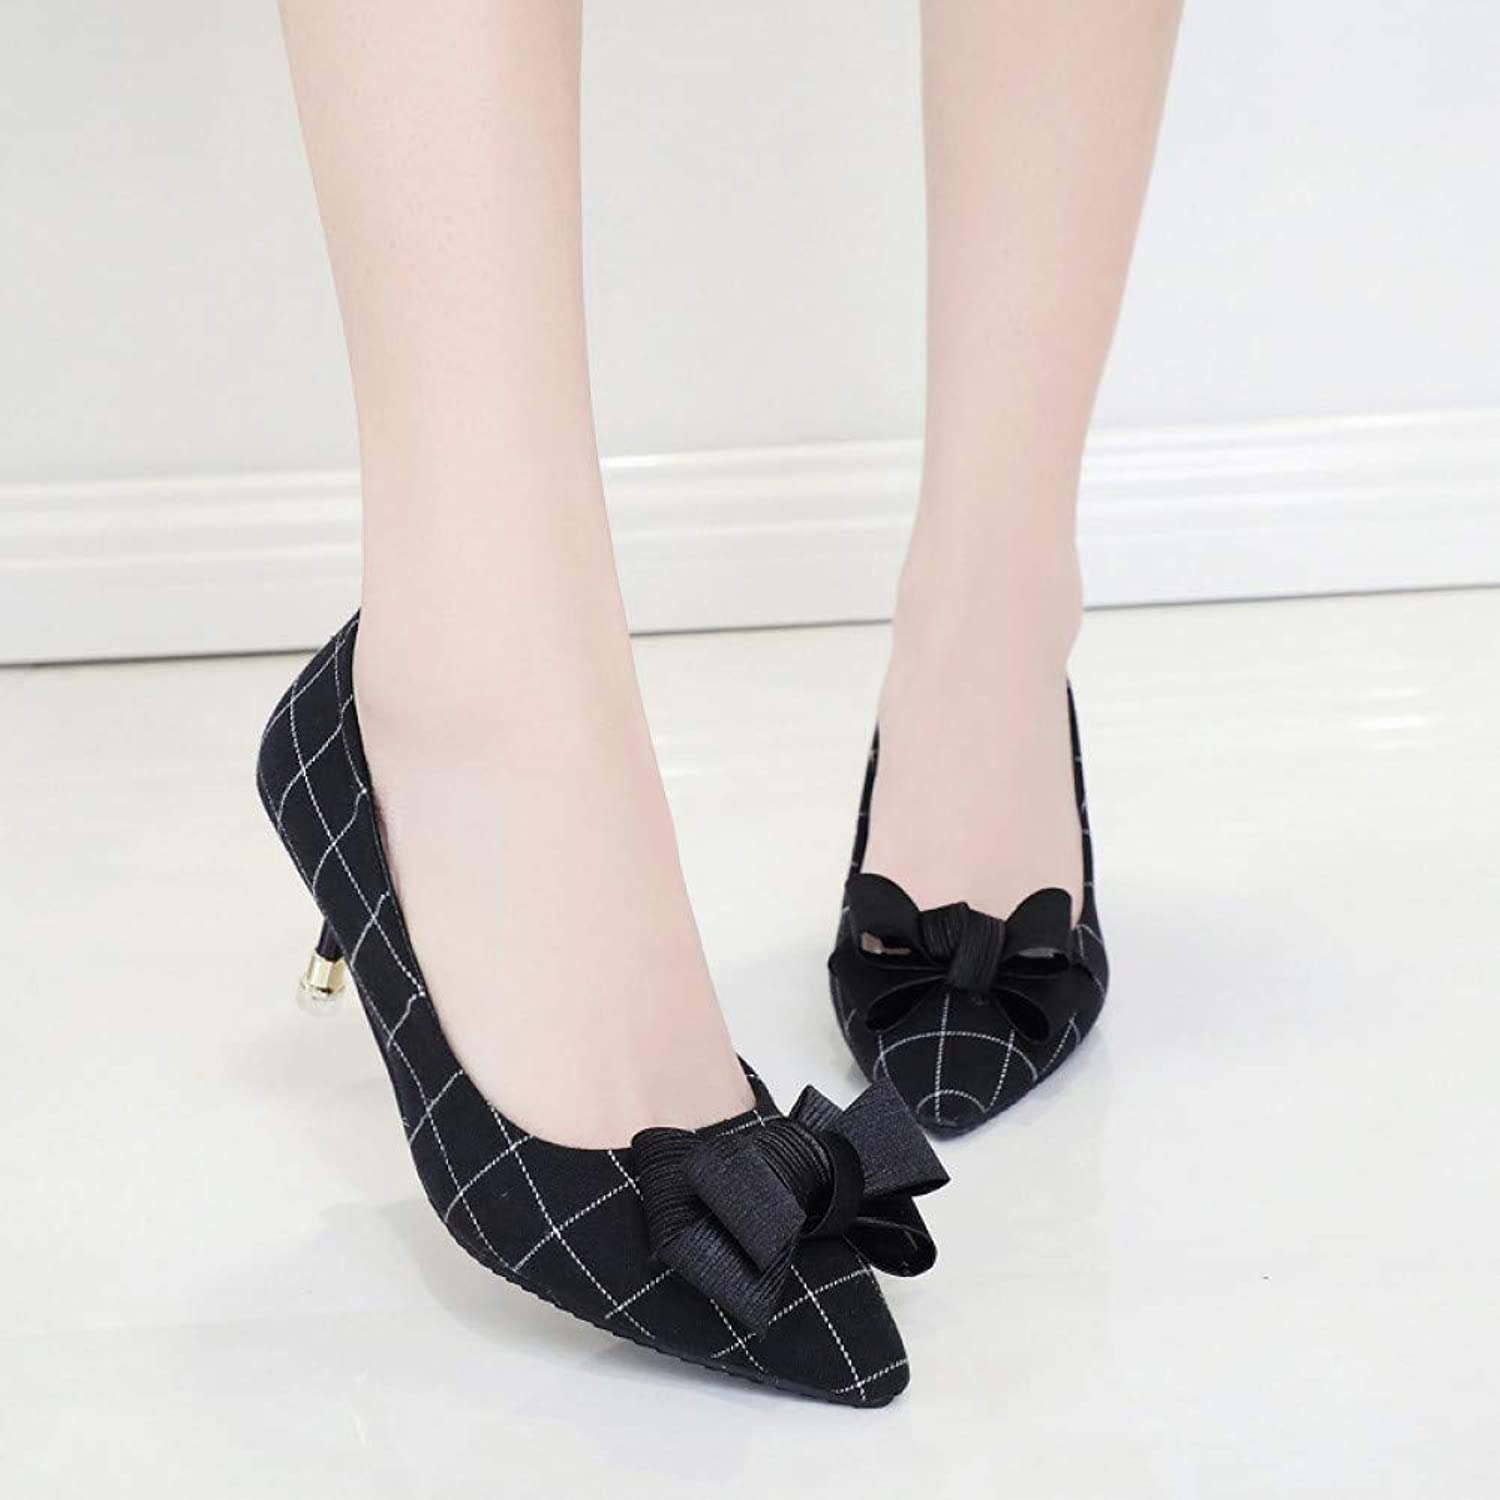 UKJSNHH igh Heels Hot Women Pumps Fashion Knot High Heels Single shoes Female Spring Summer Plaid Leather Wedding Party shoes Woman